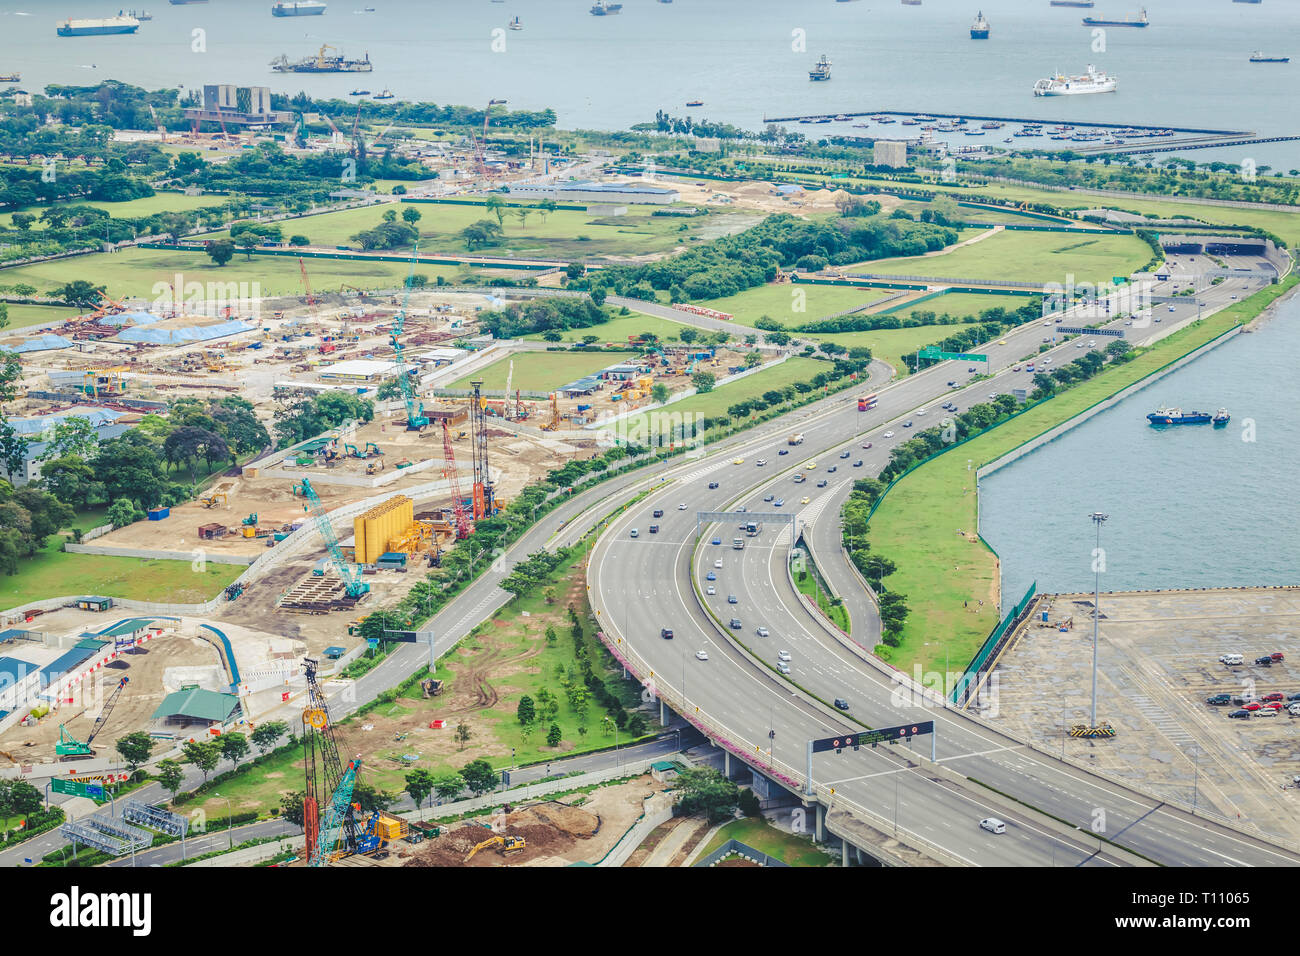 May 01 2018 - Straits View aerial landscape, undeveloped planning region besides Marina Bay and Downtown Core of Singapore Stock Photo